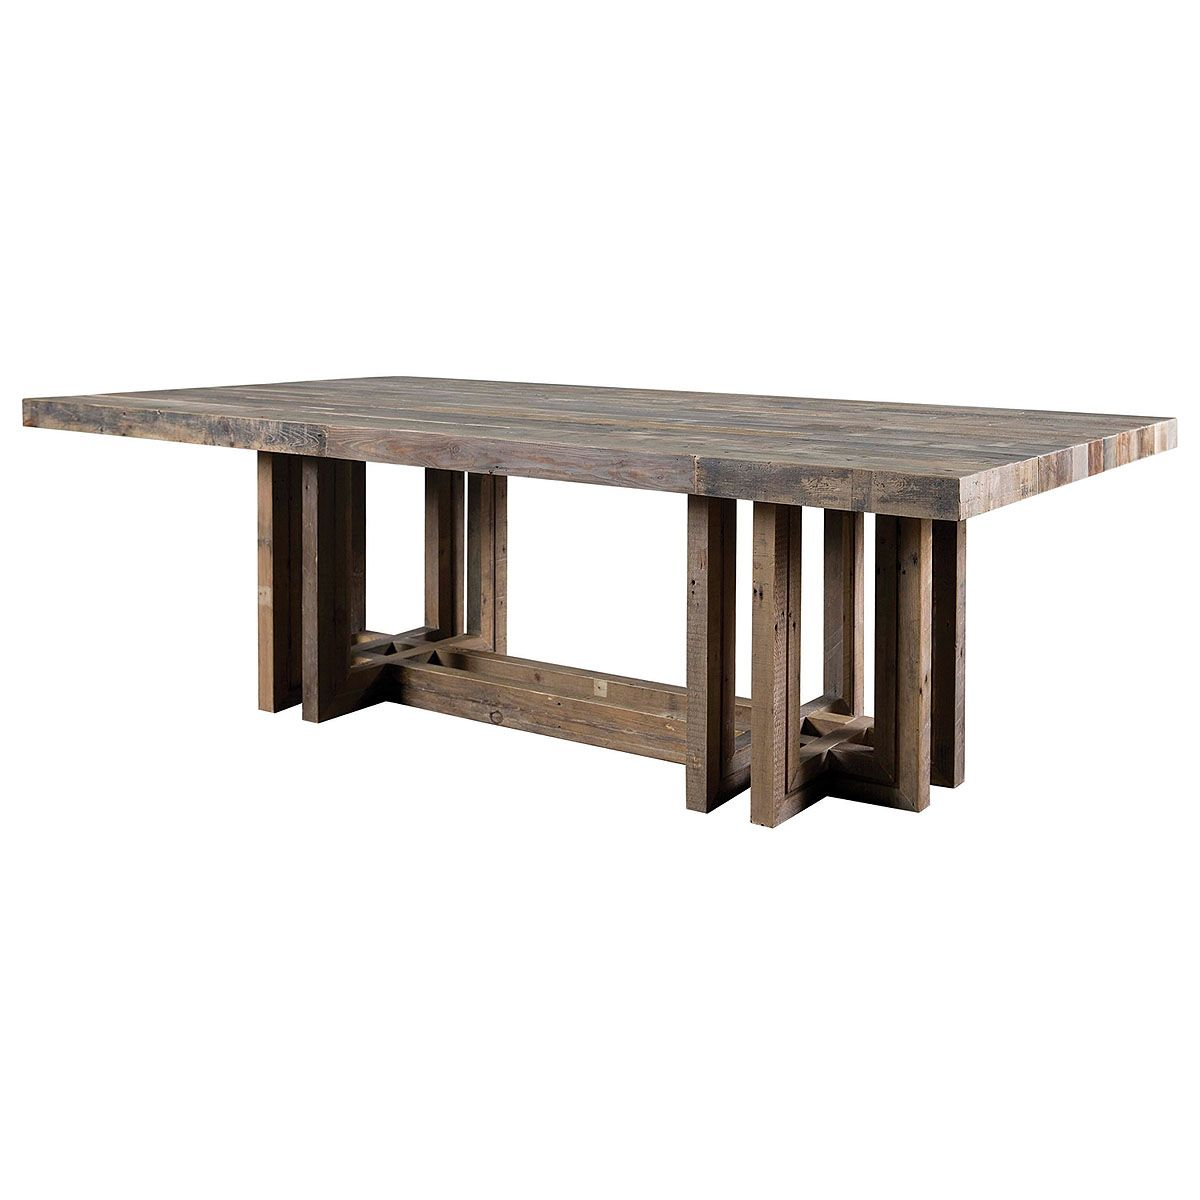 Cartago Dining Table Mixed Reclaimed Woods 96 W X 47 D X 31 H